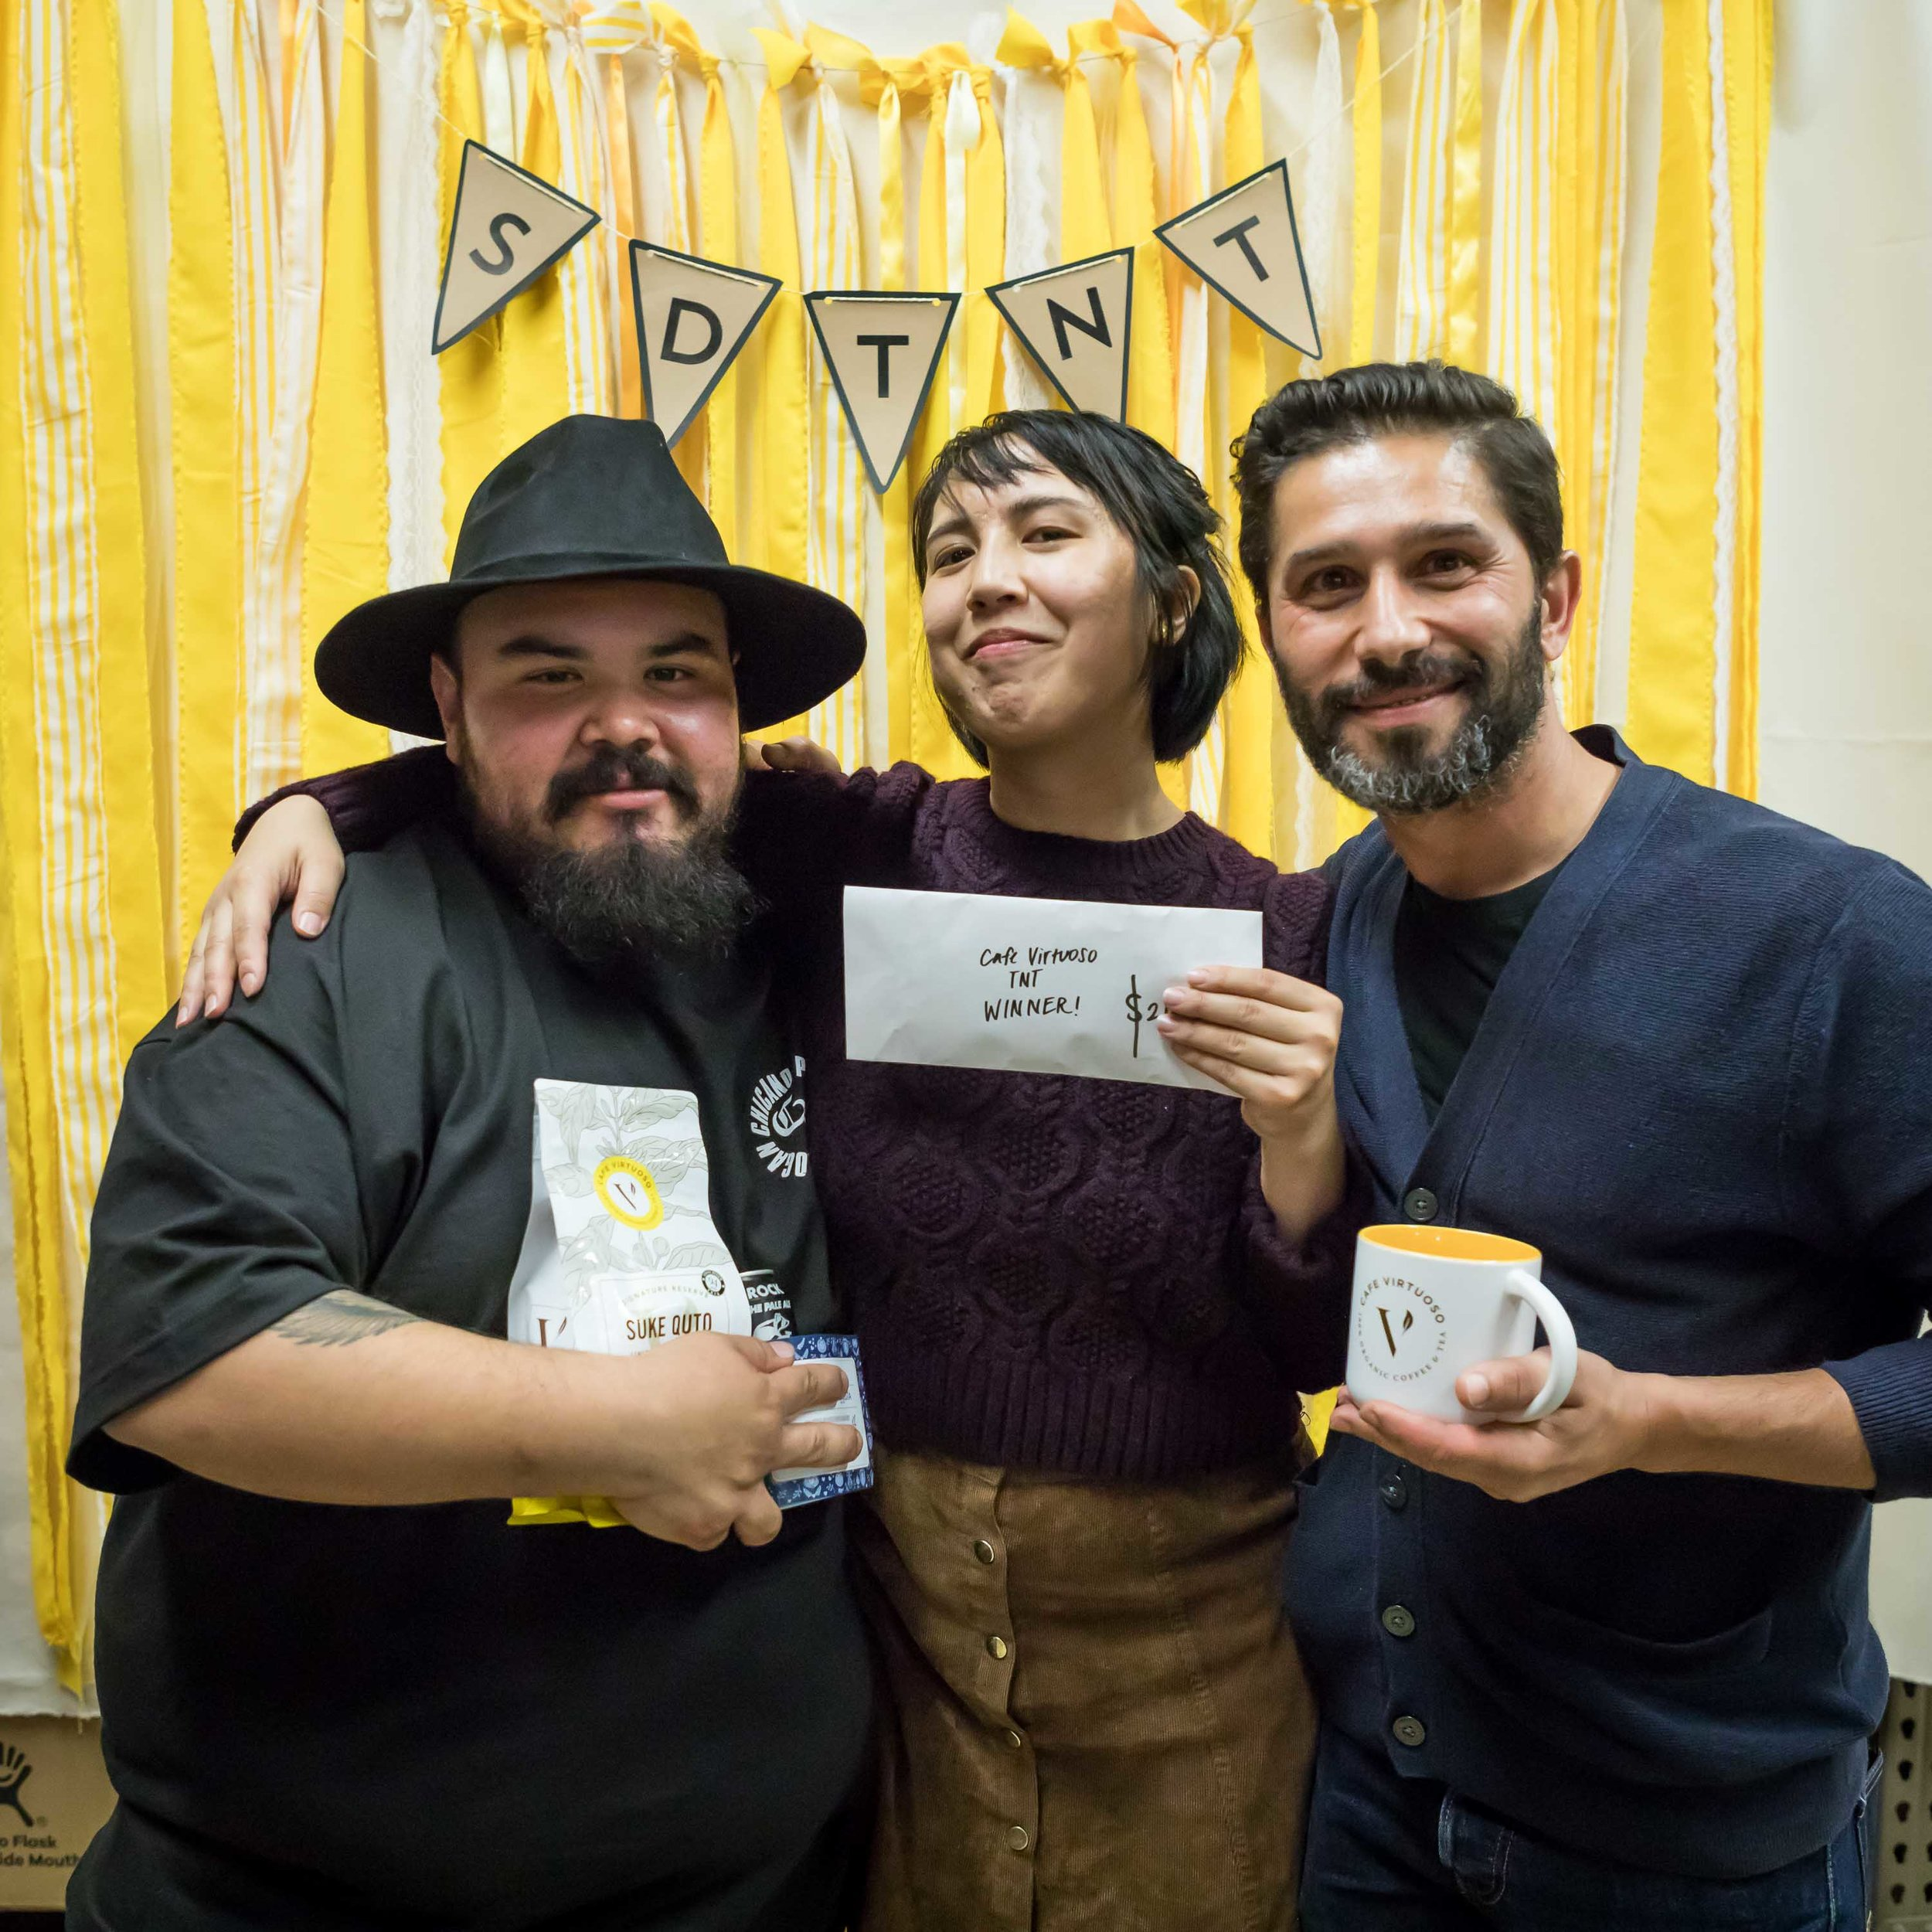 From left to right: Manny from Por Vida in 3rd place, Mary from Cafe Virtuoso in 1st place, Dimi from Parakeet in 2nd place